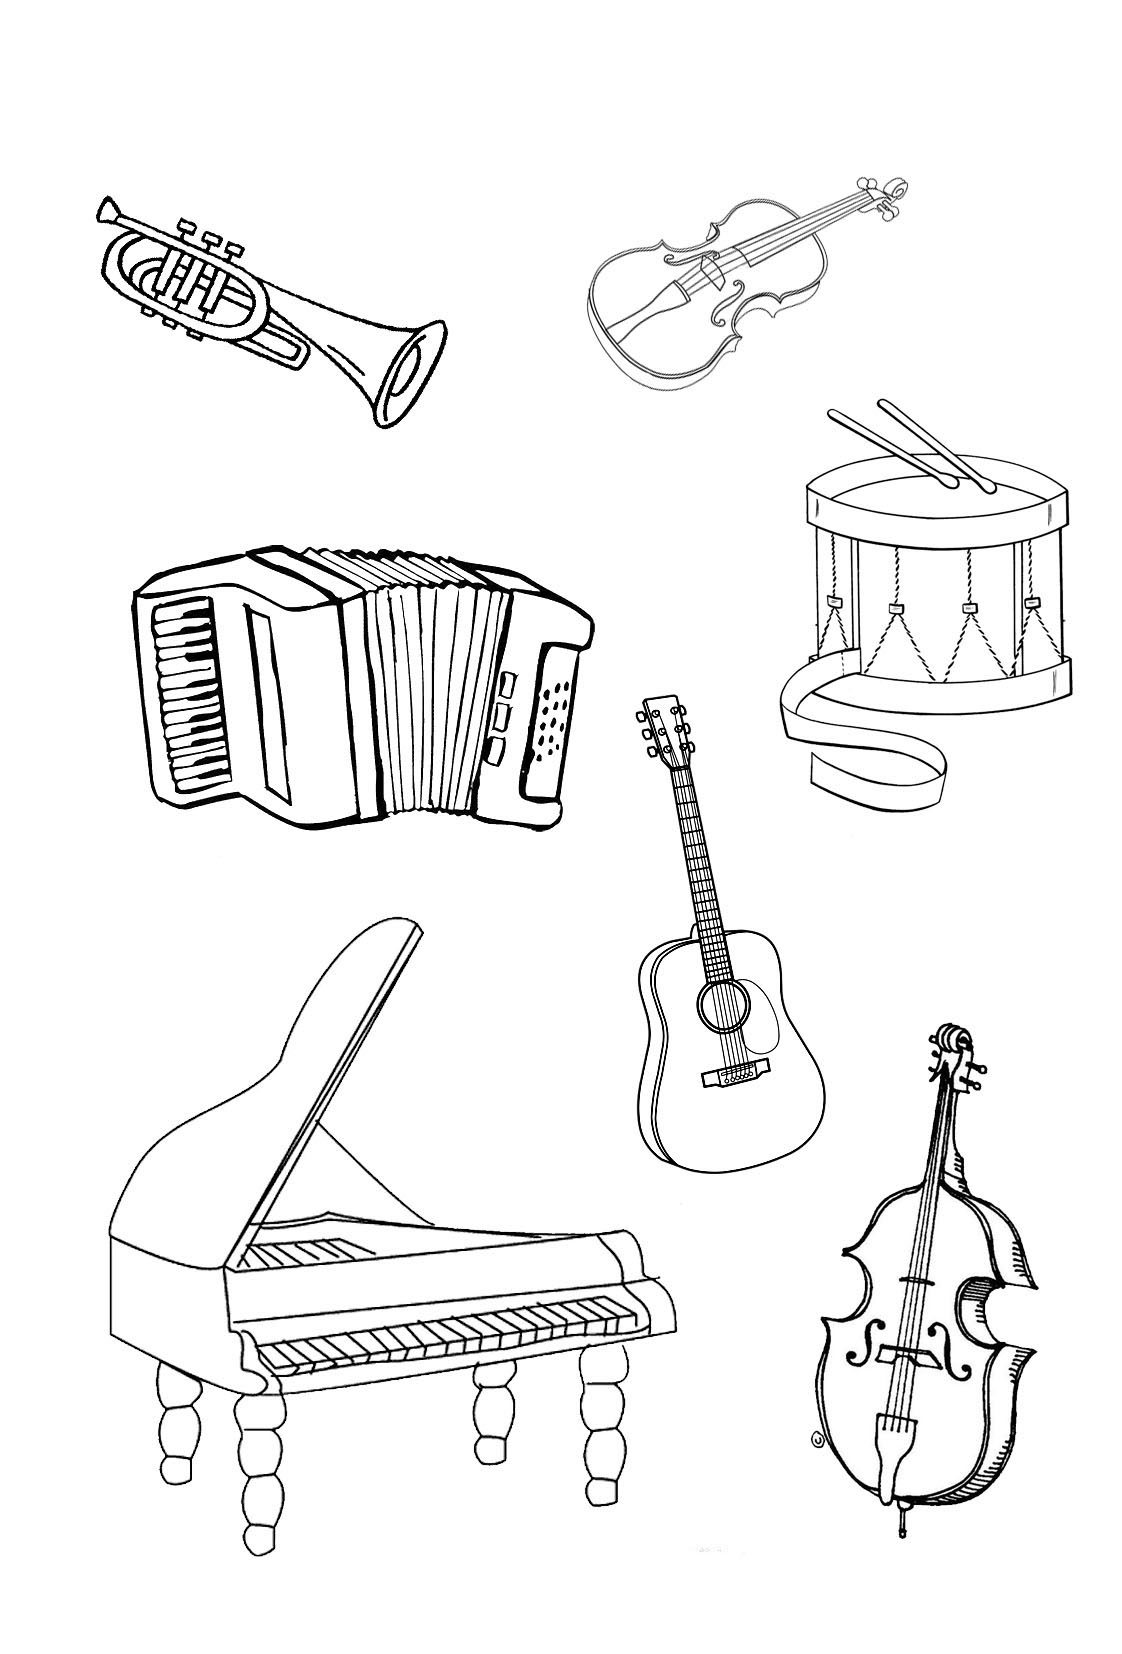 free printable coloring pages of musical instruments 16 best percussion images on pinterest music education printable pages musical free instruments coloring of